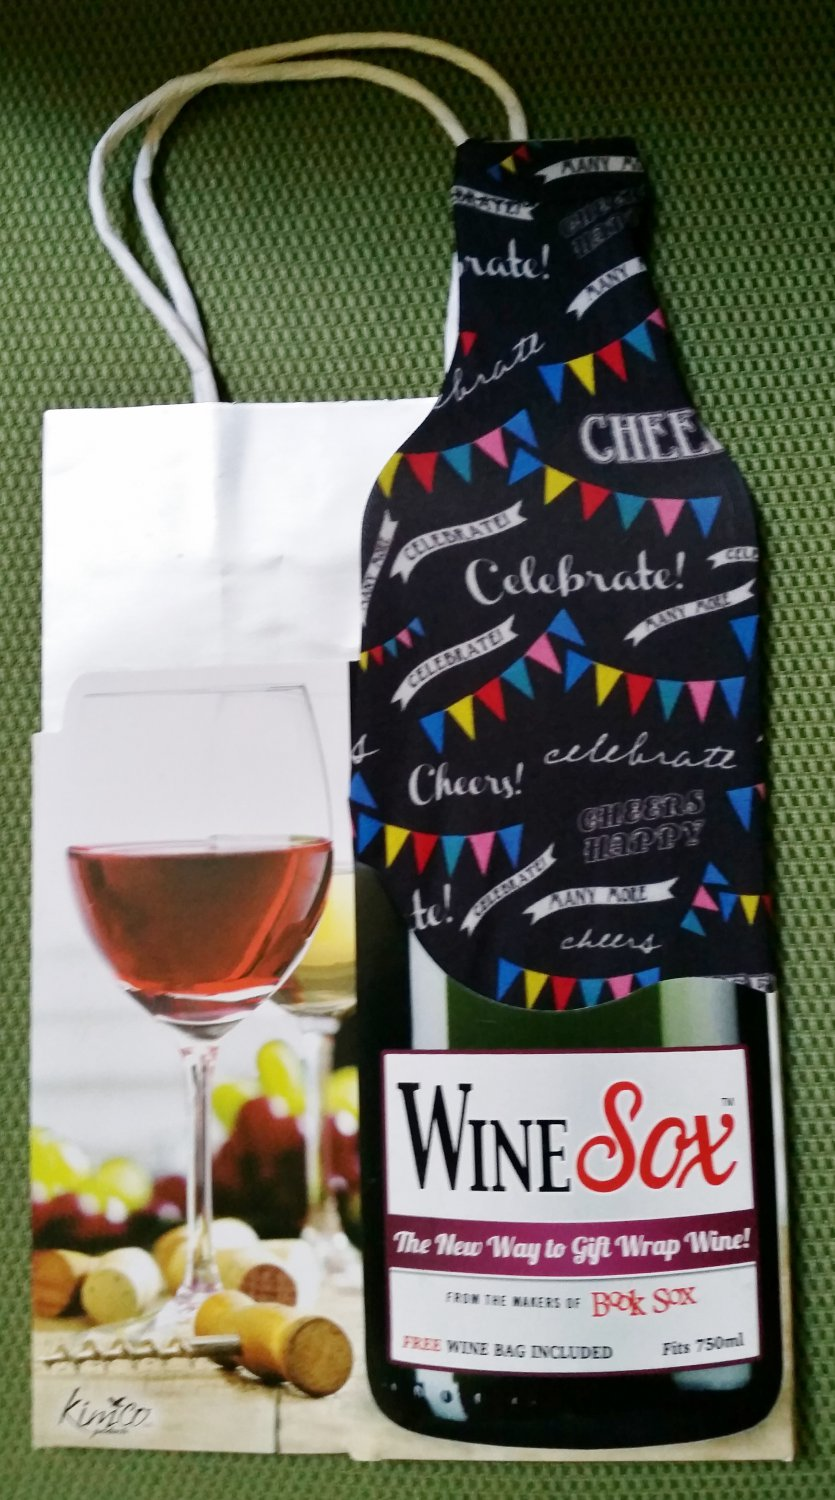 Wine Sox: Celebrate Design -- Stretchy fabric cover to spice up your boring wine bottles!